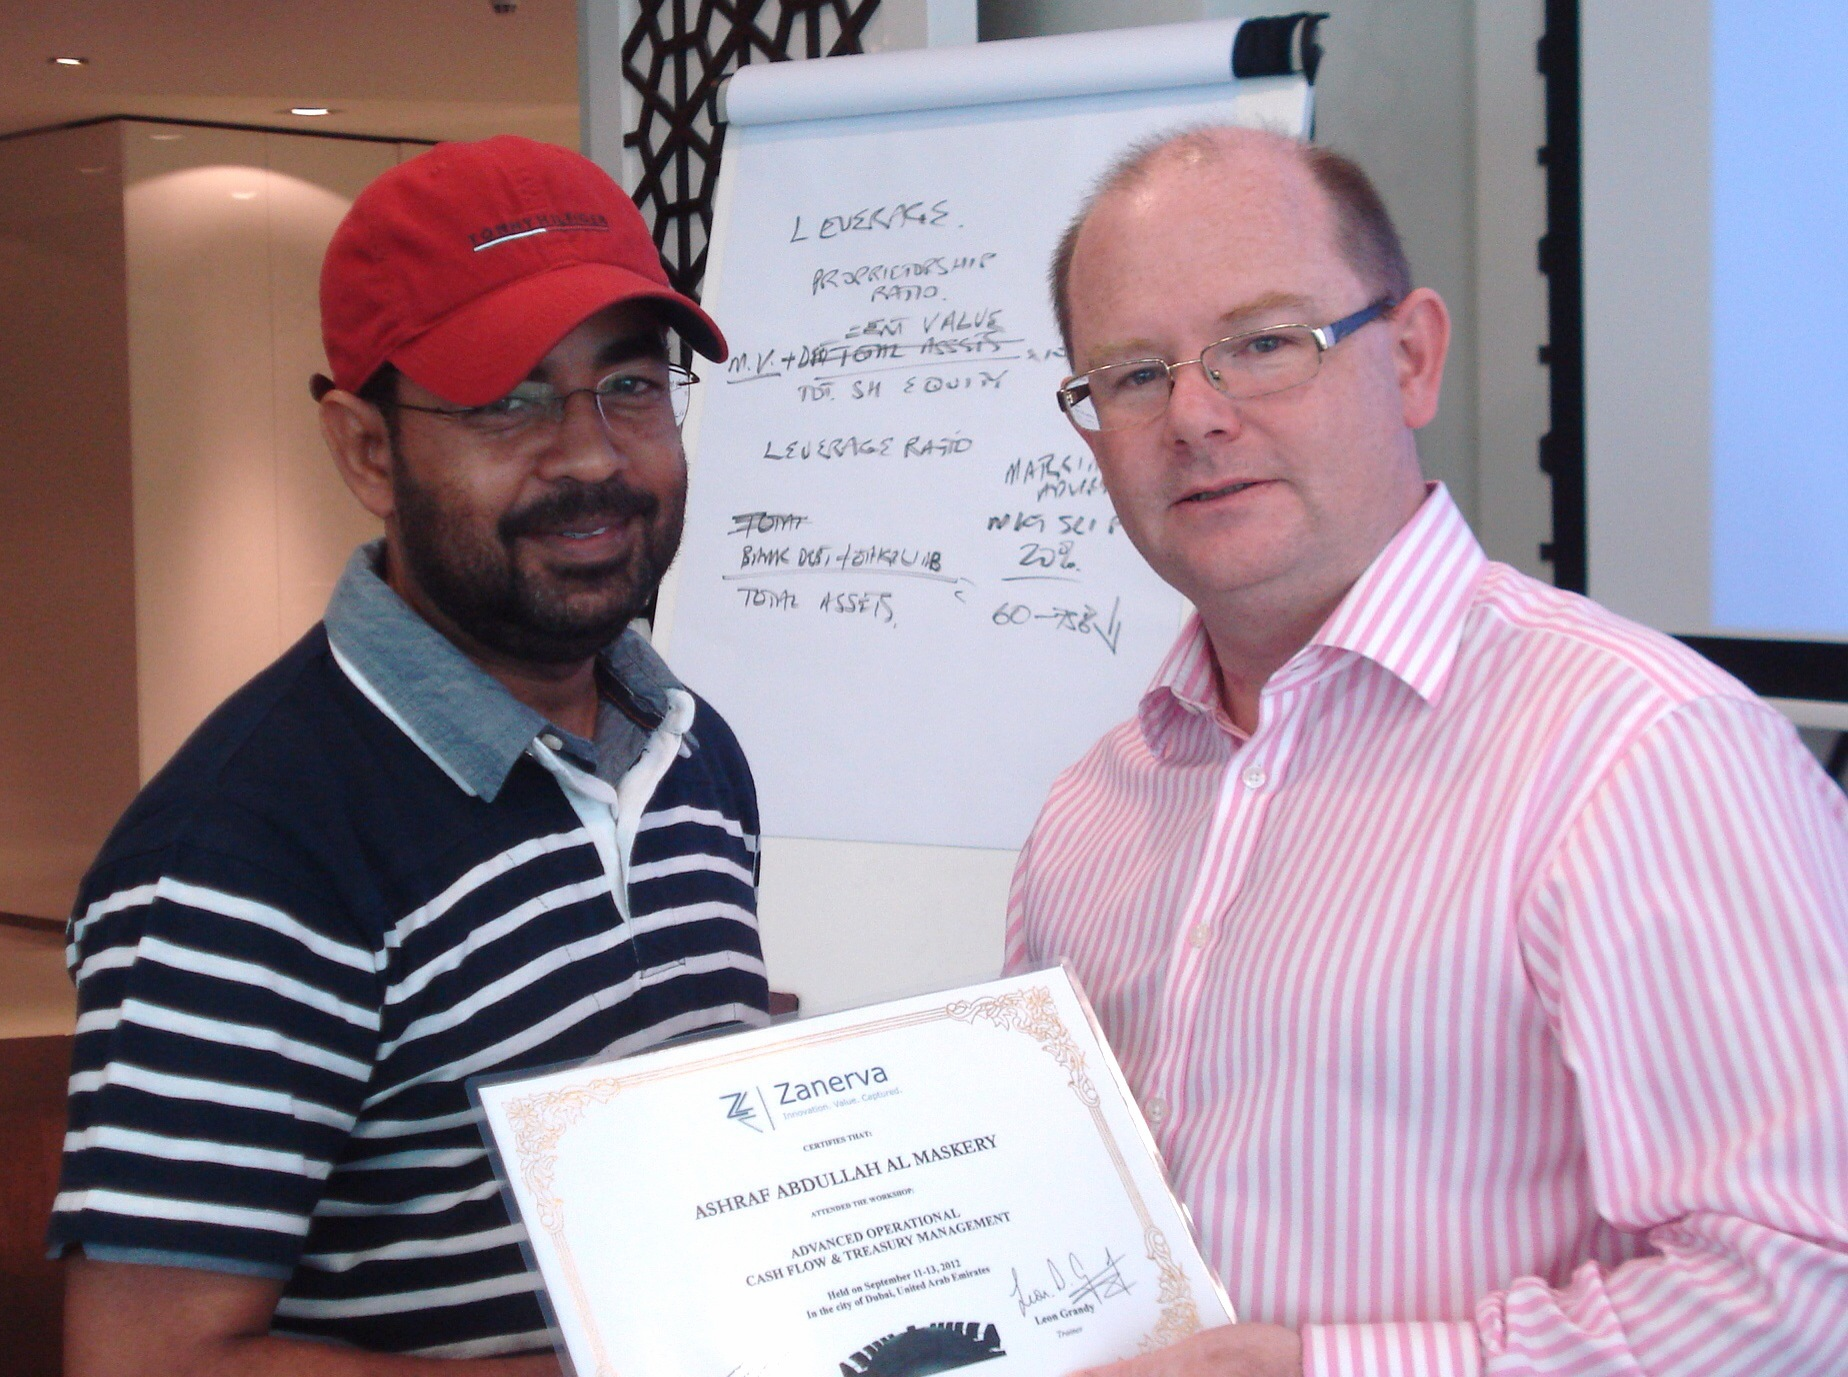 Ashraf Abdullah Al Maskery, Accountant at The Wave Muscat  receiving his certificate of participation for attending the Advanced Operational Cash Flow & Liquidity Risk Management workshop in Dubai